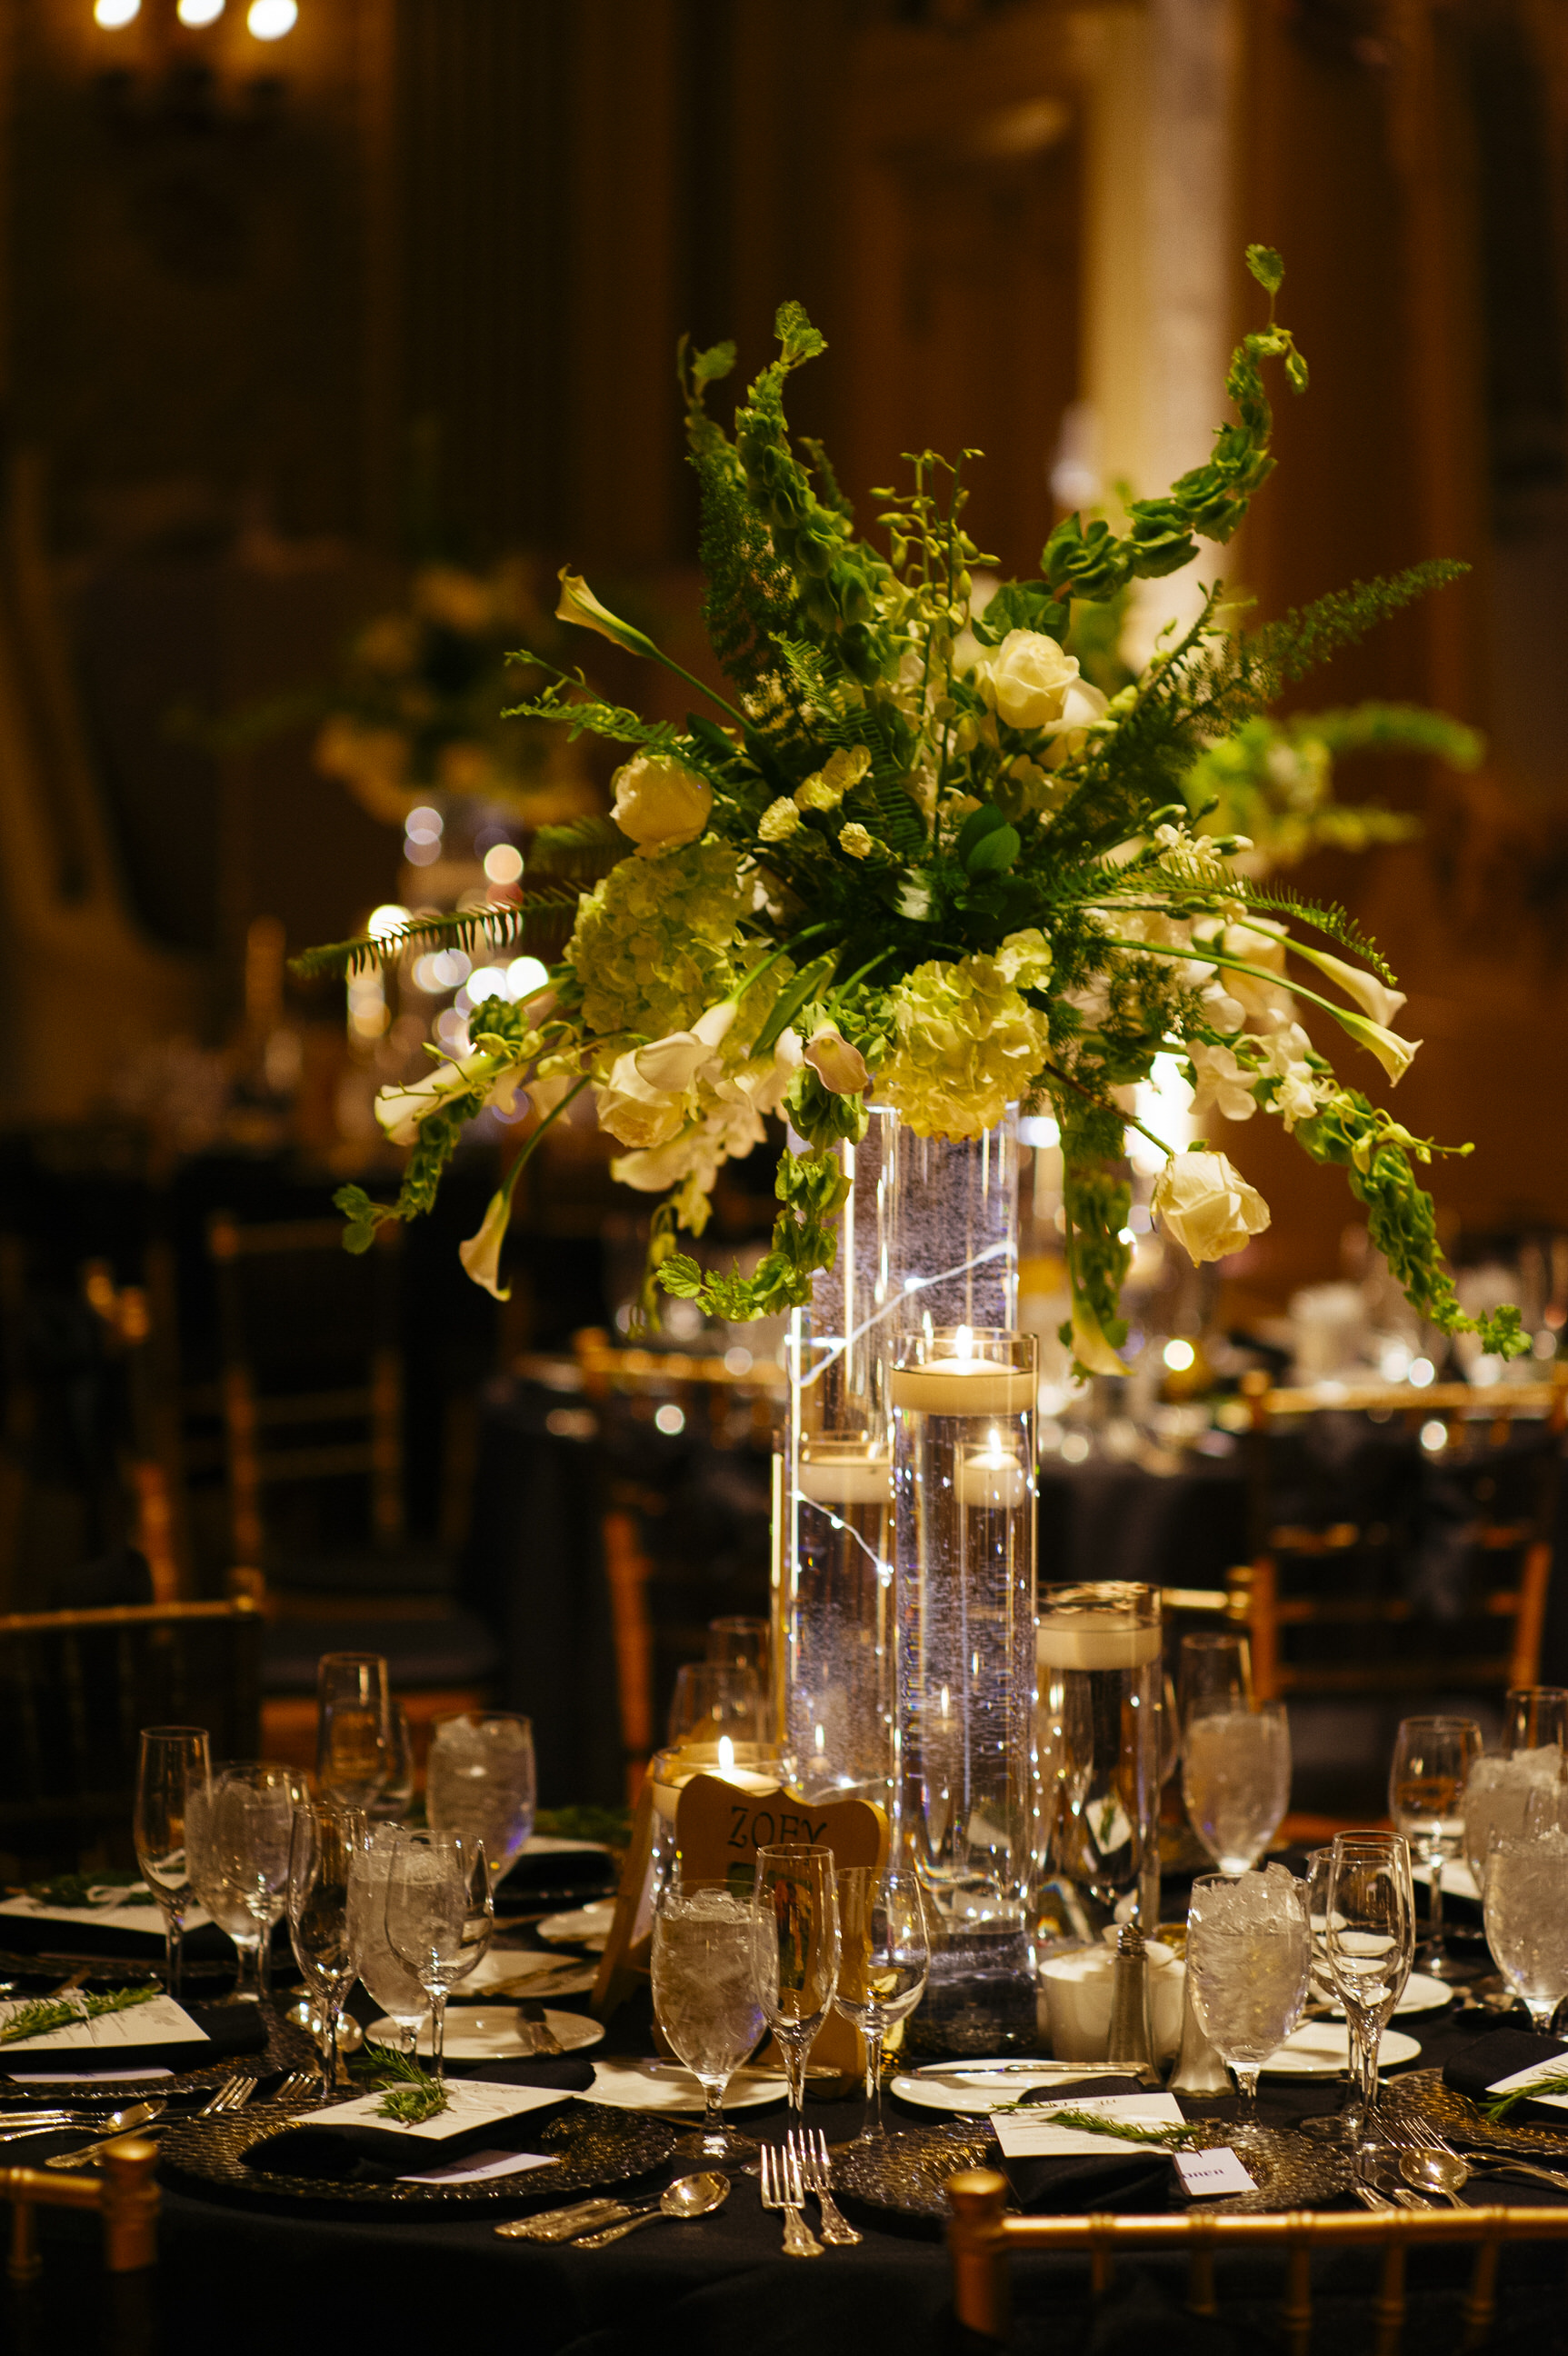 26 Hotel DuPont Wedding Centerpiece Bells of Ireland Roses Tulips Green and White Candlelight.jpg